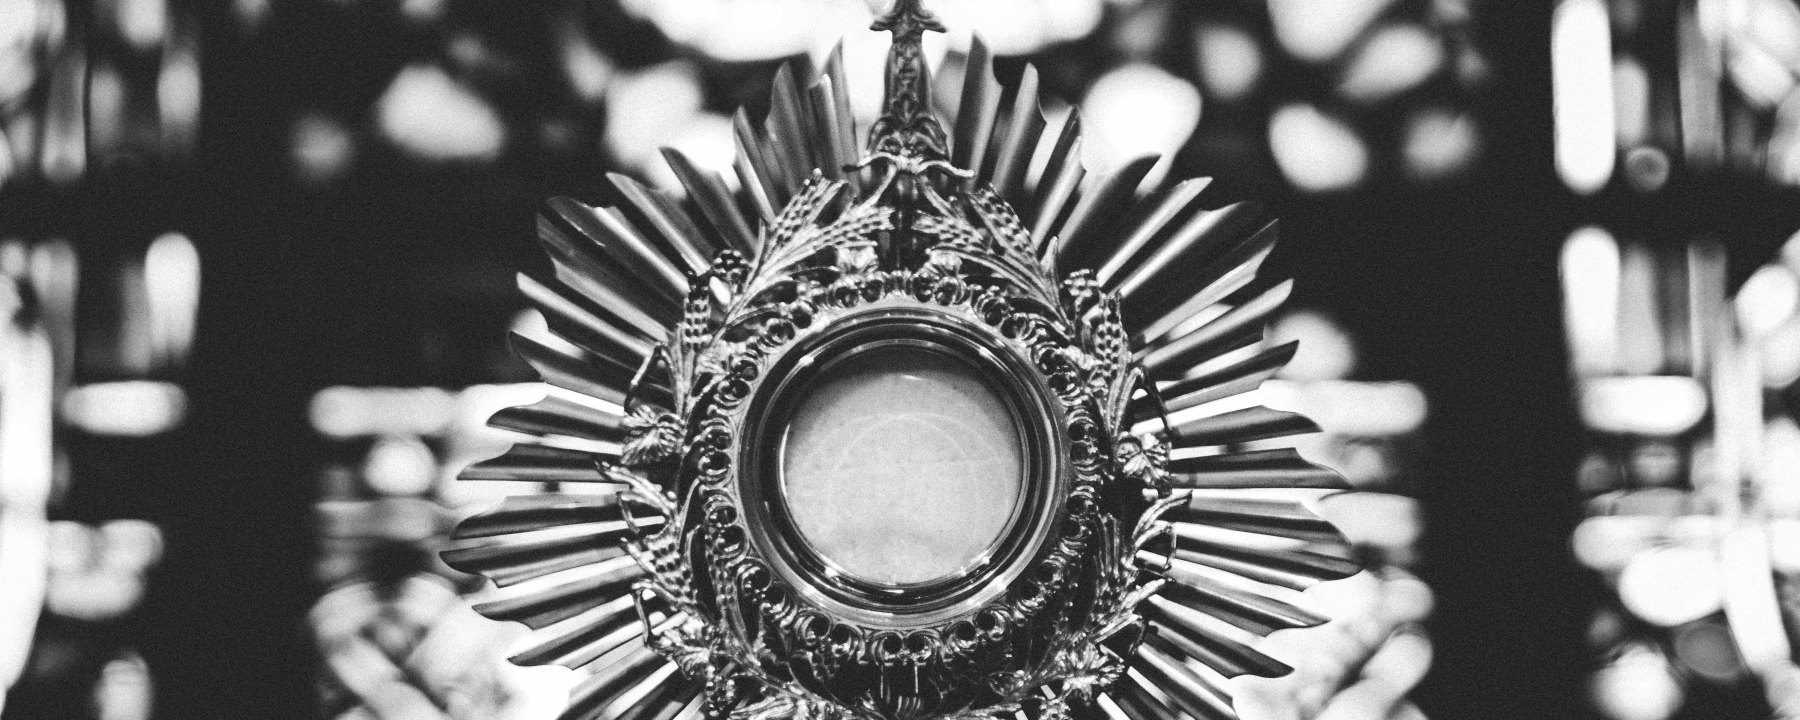 Monstrance, Eucharist, Holy Communion, Church